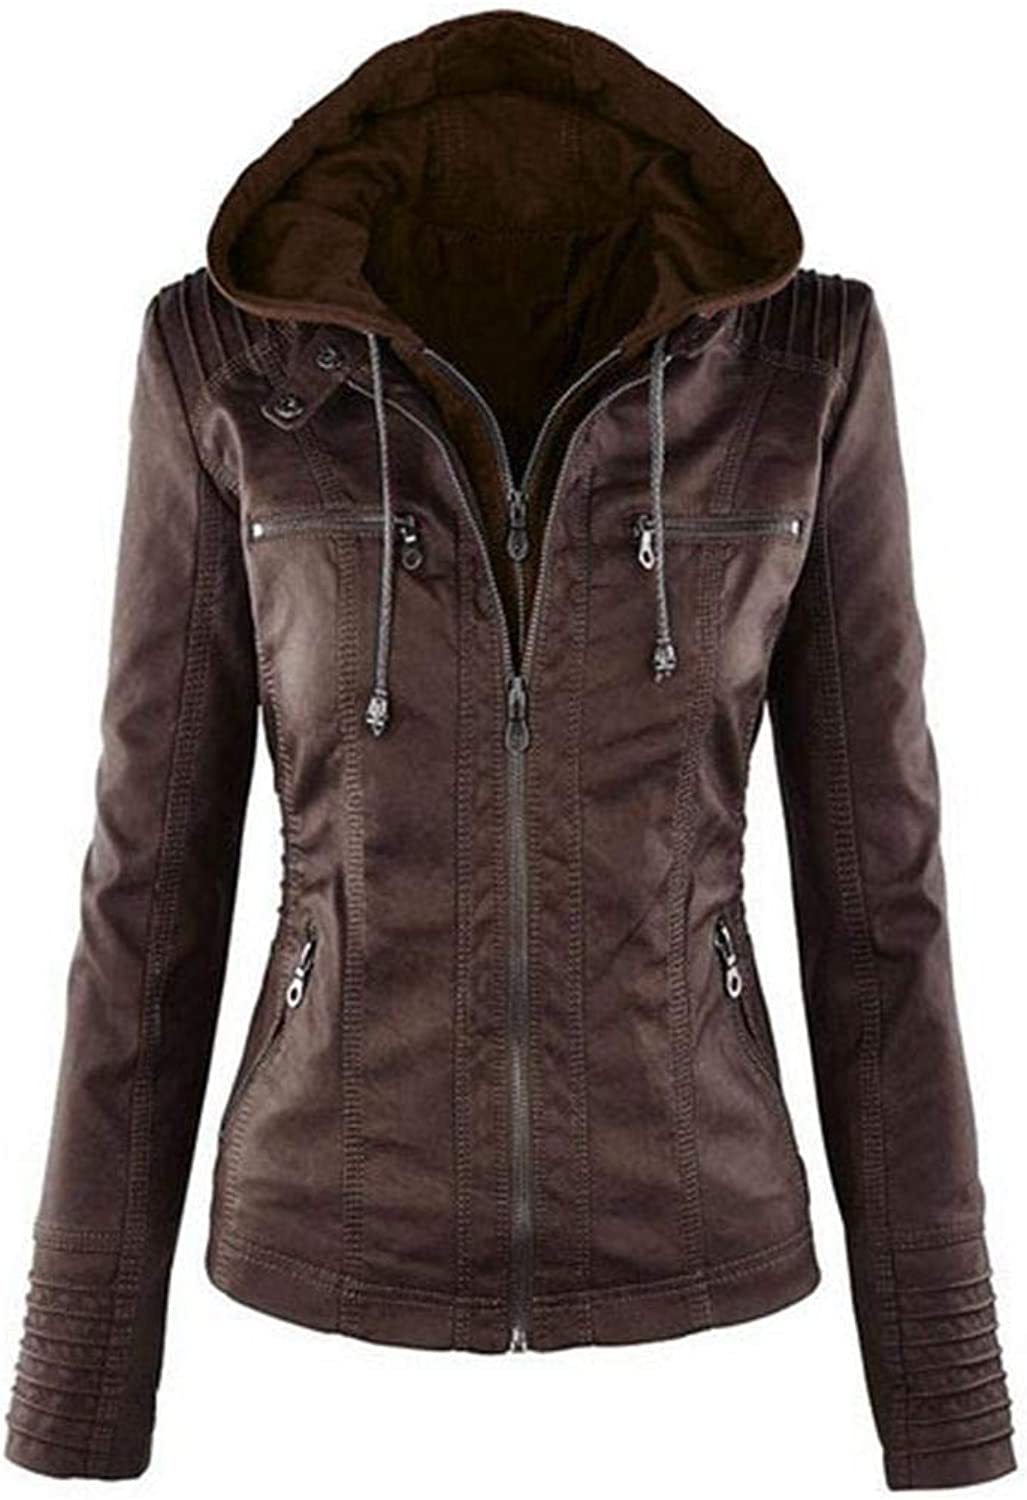 Didade Women Casual Hooded Long Sleeve Double Zip Jacket Coat Outwear Leather